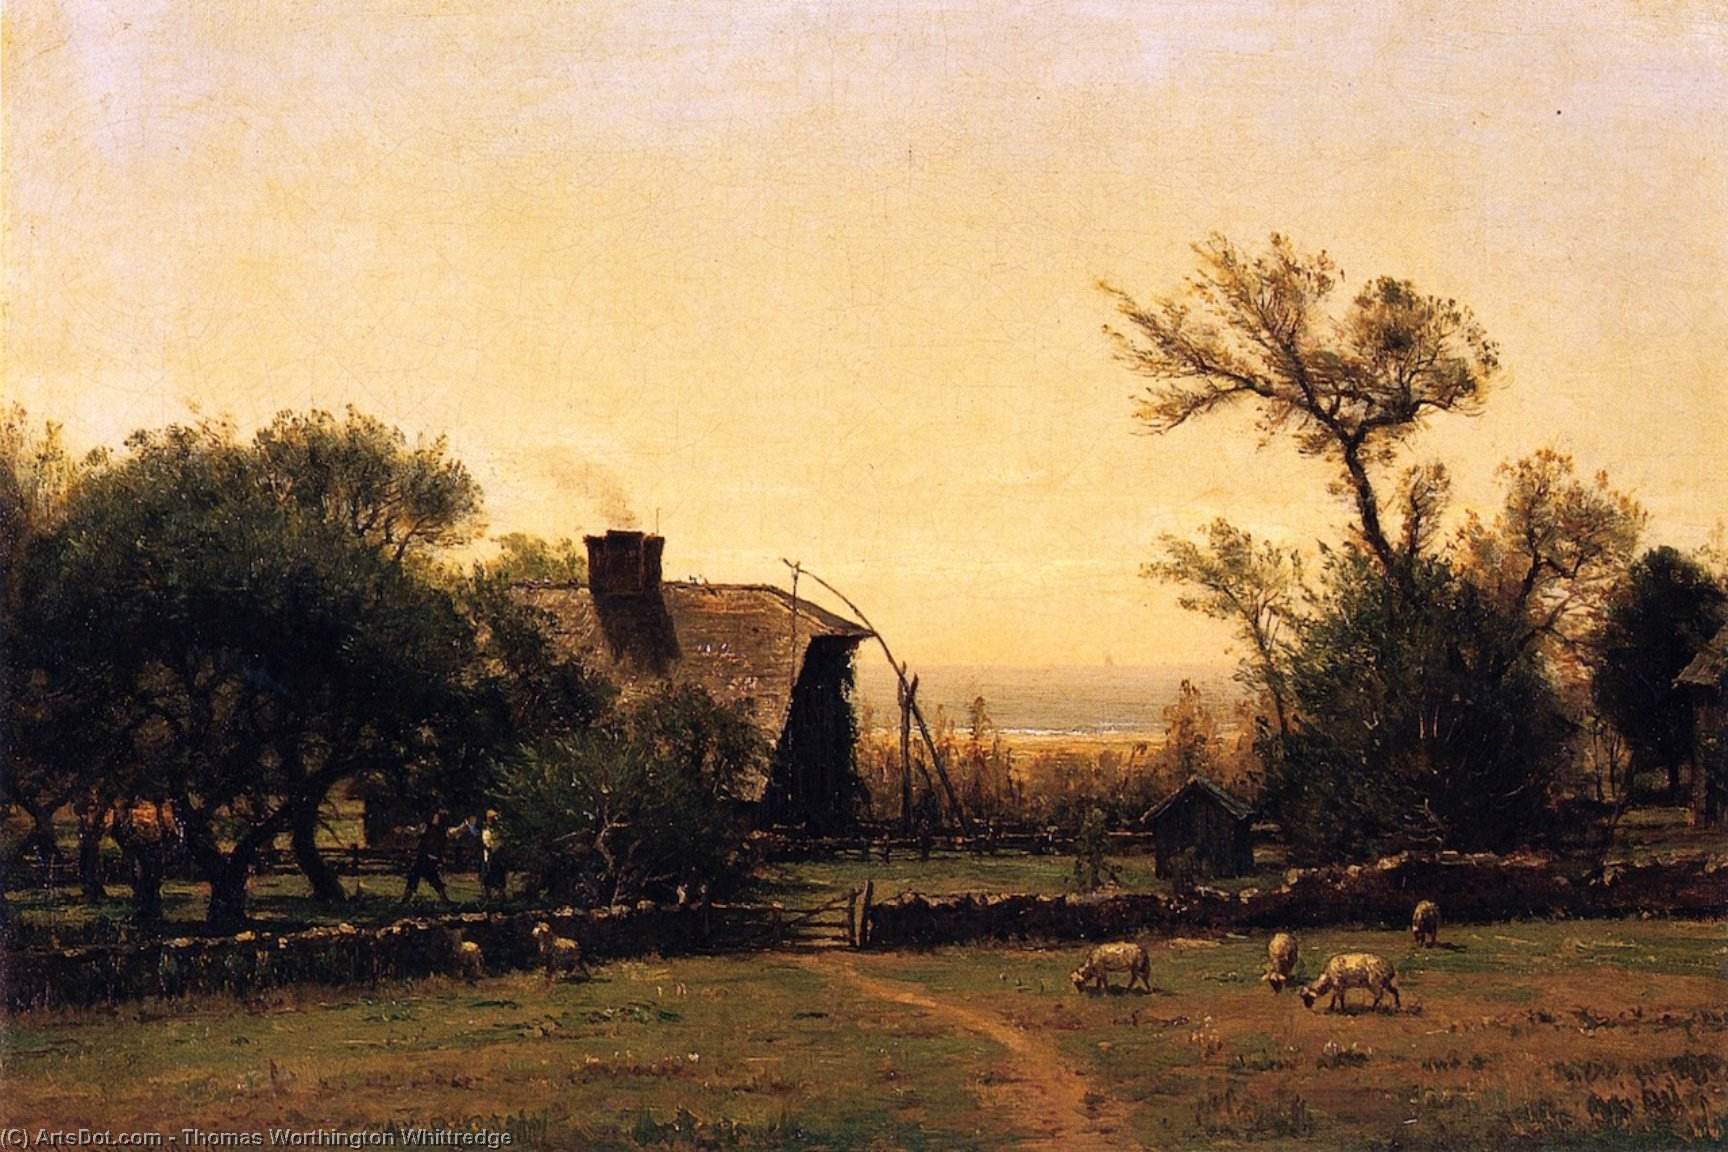 Whitehall - Bishop Berkeley`s Farm at Middleton, Rhode Island, 1880 by Thomas Worthington Whittredge (1820-1910, United States) | Art Reproductions Thomas Worthington Whittredge | ArtsDot.com